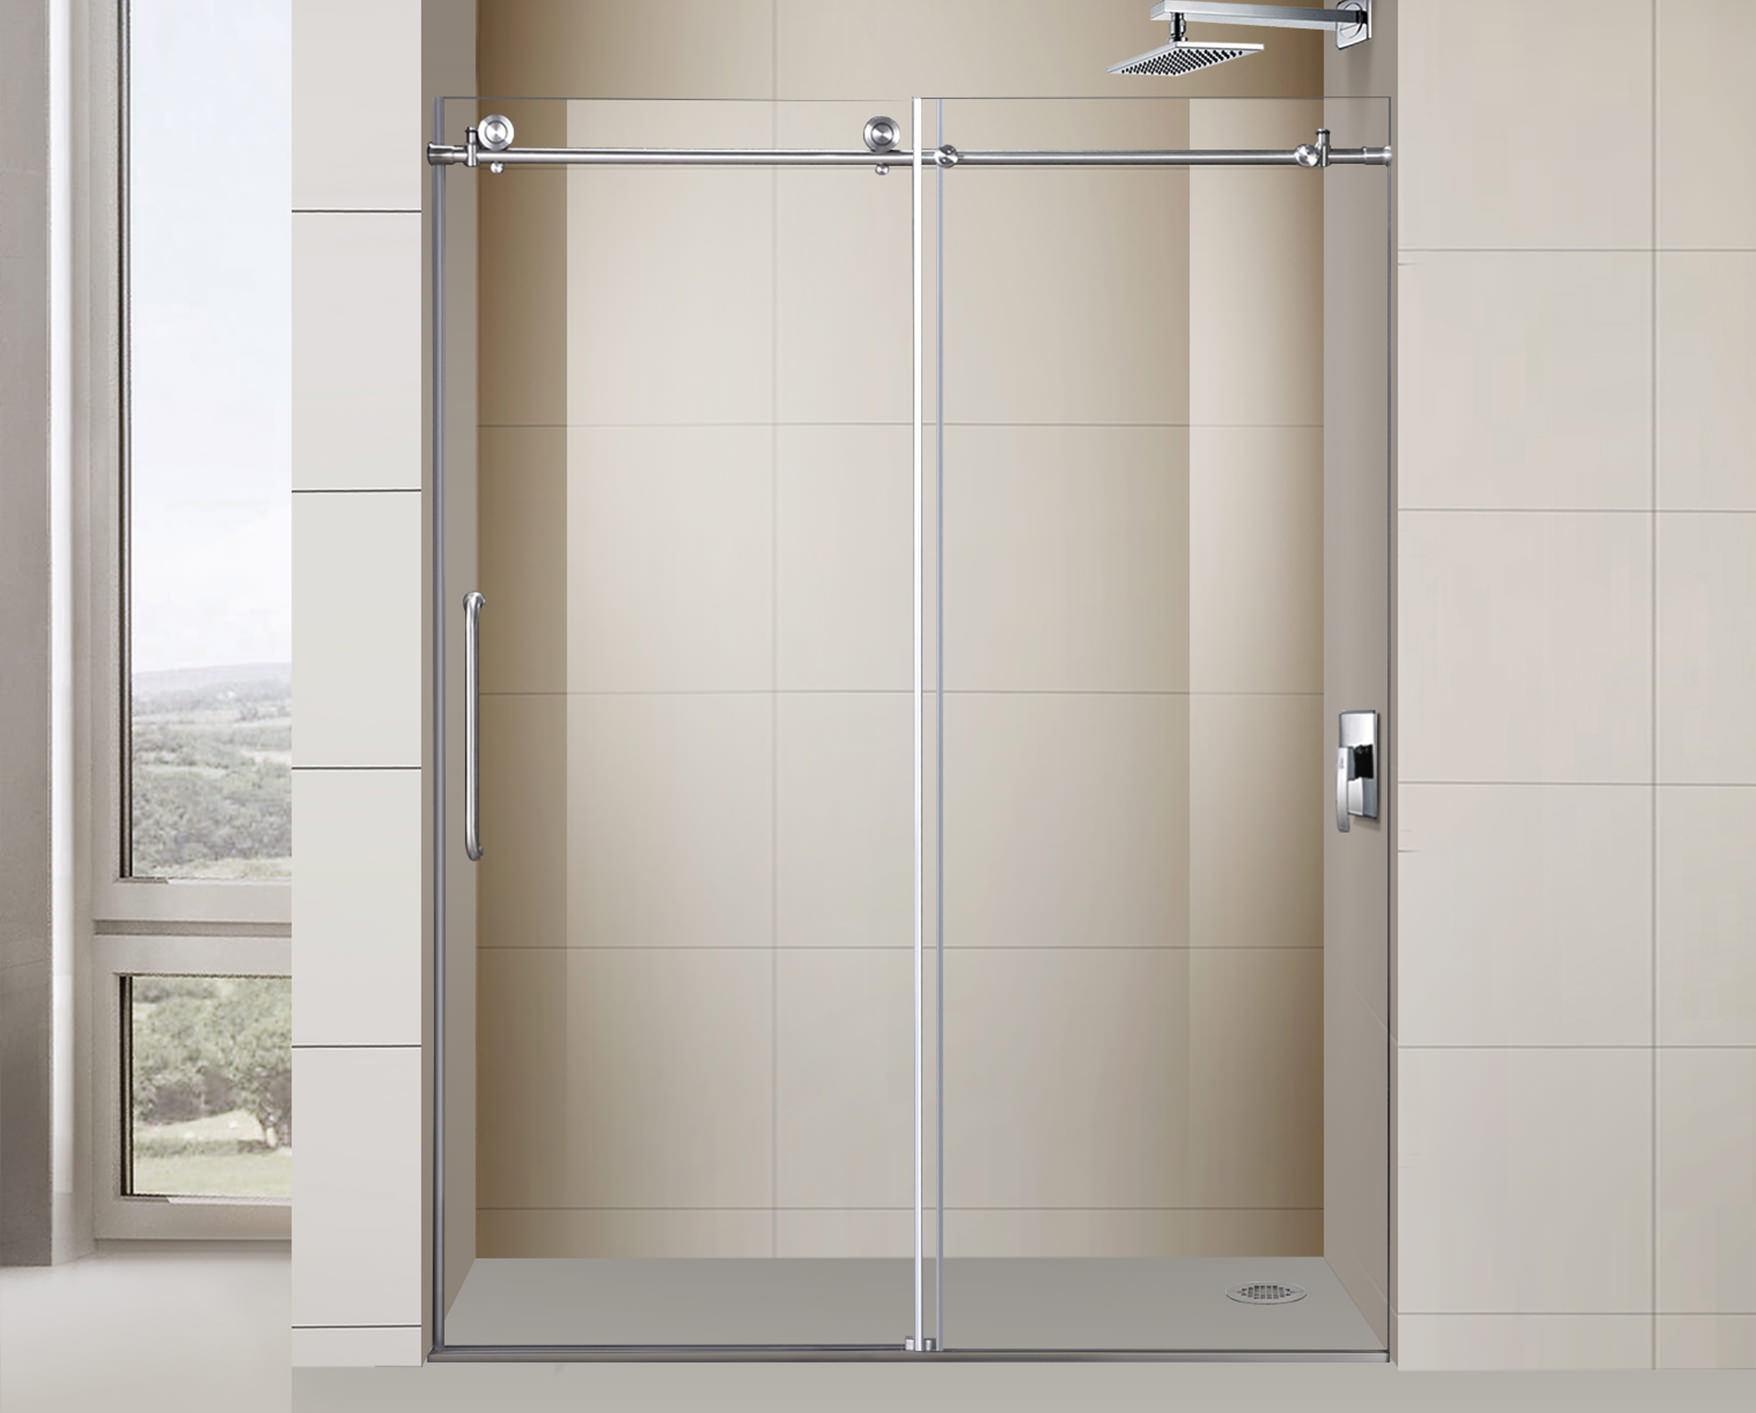 Excellent Roman Style Shower Contemporary Bathroom With